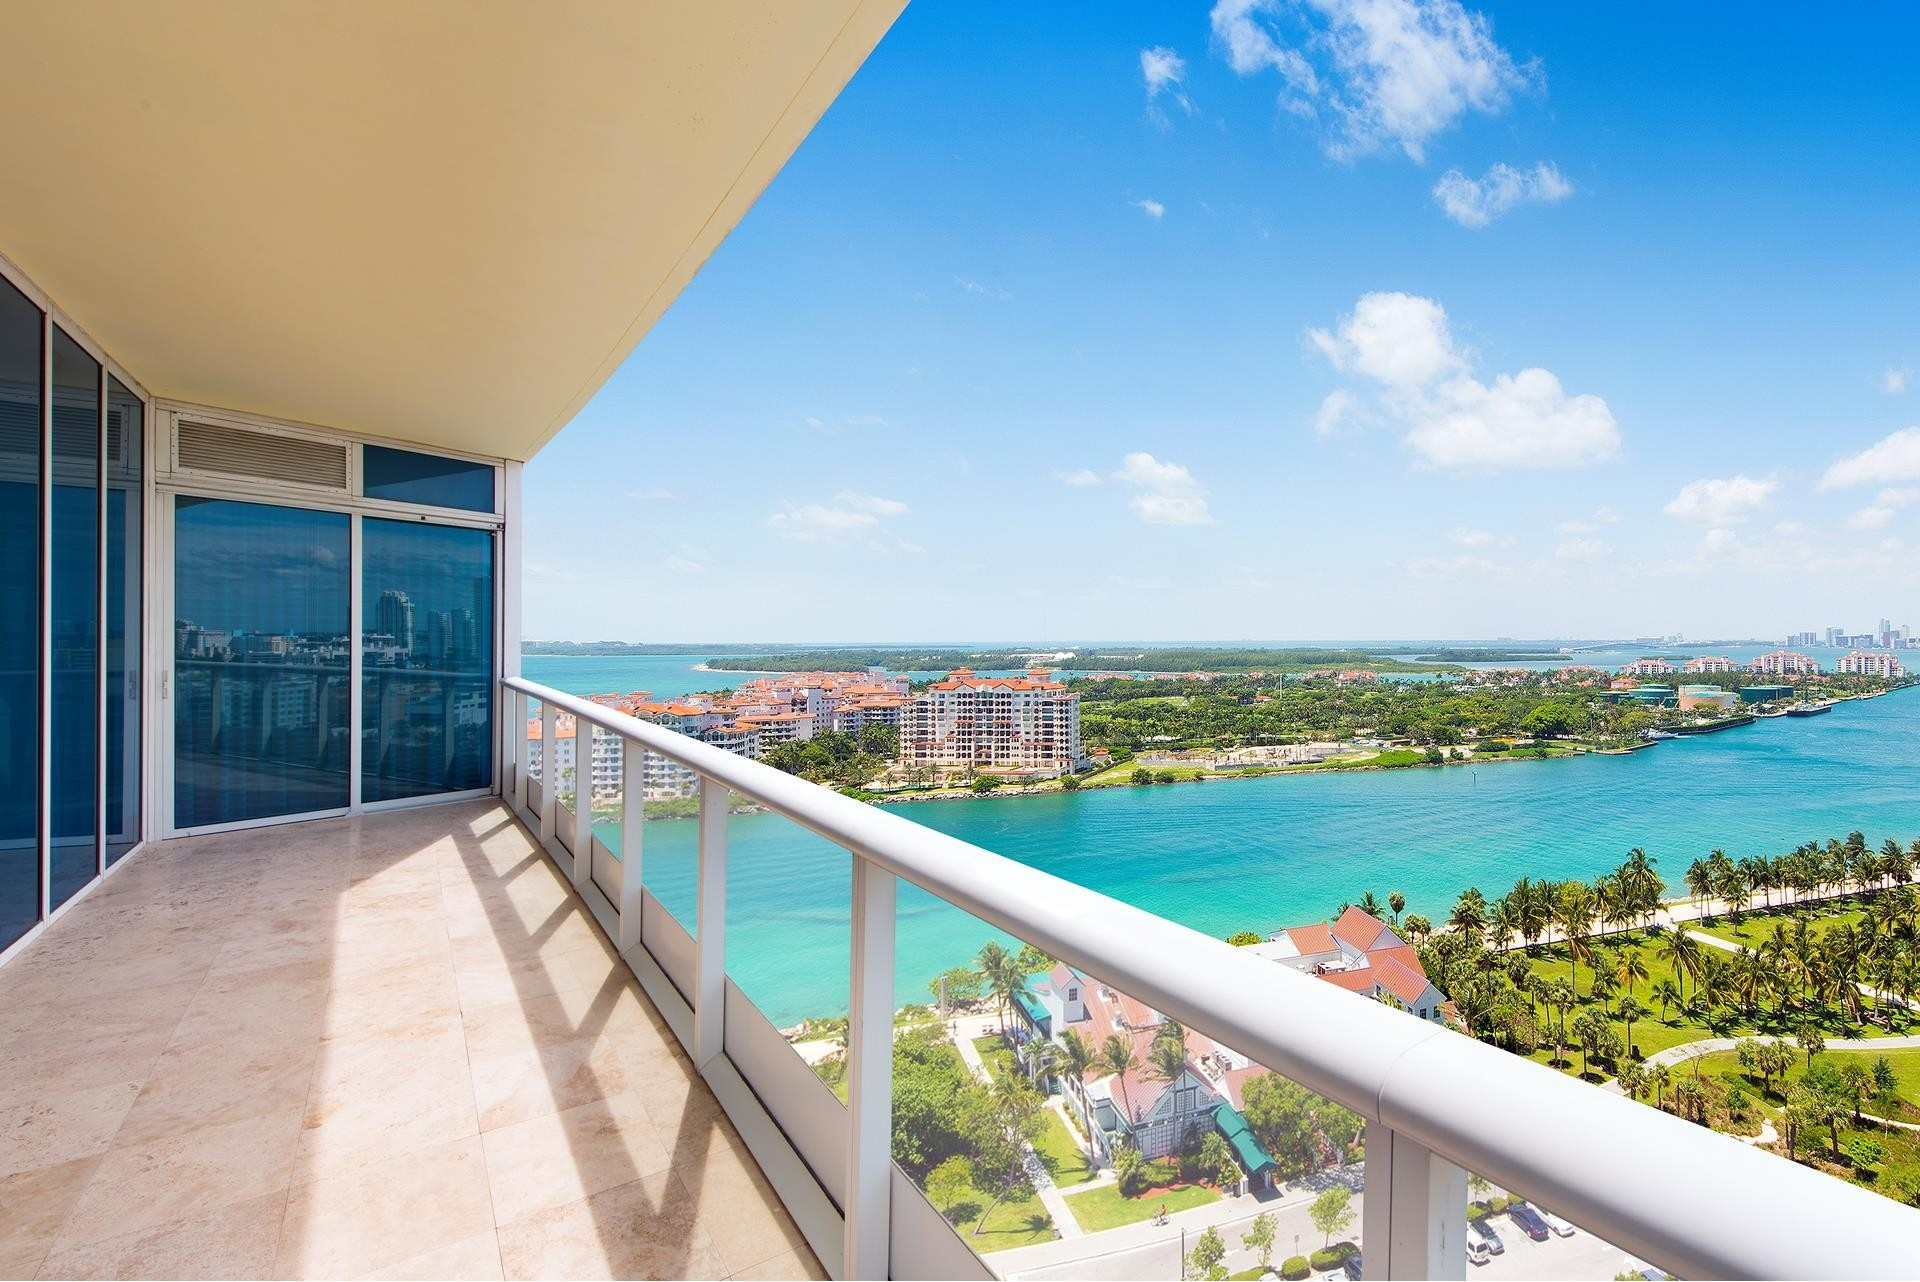 Property at 100 S Pointe Dr , 1601 South Point, Miami Beach, FL 33139